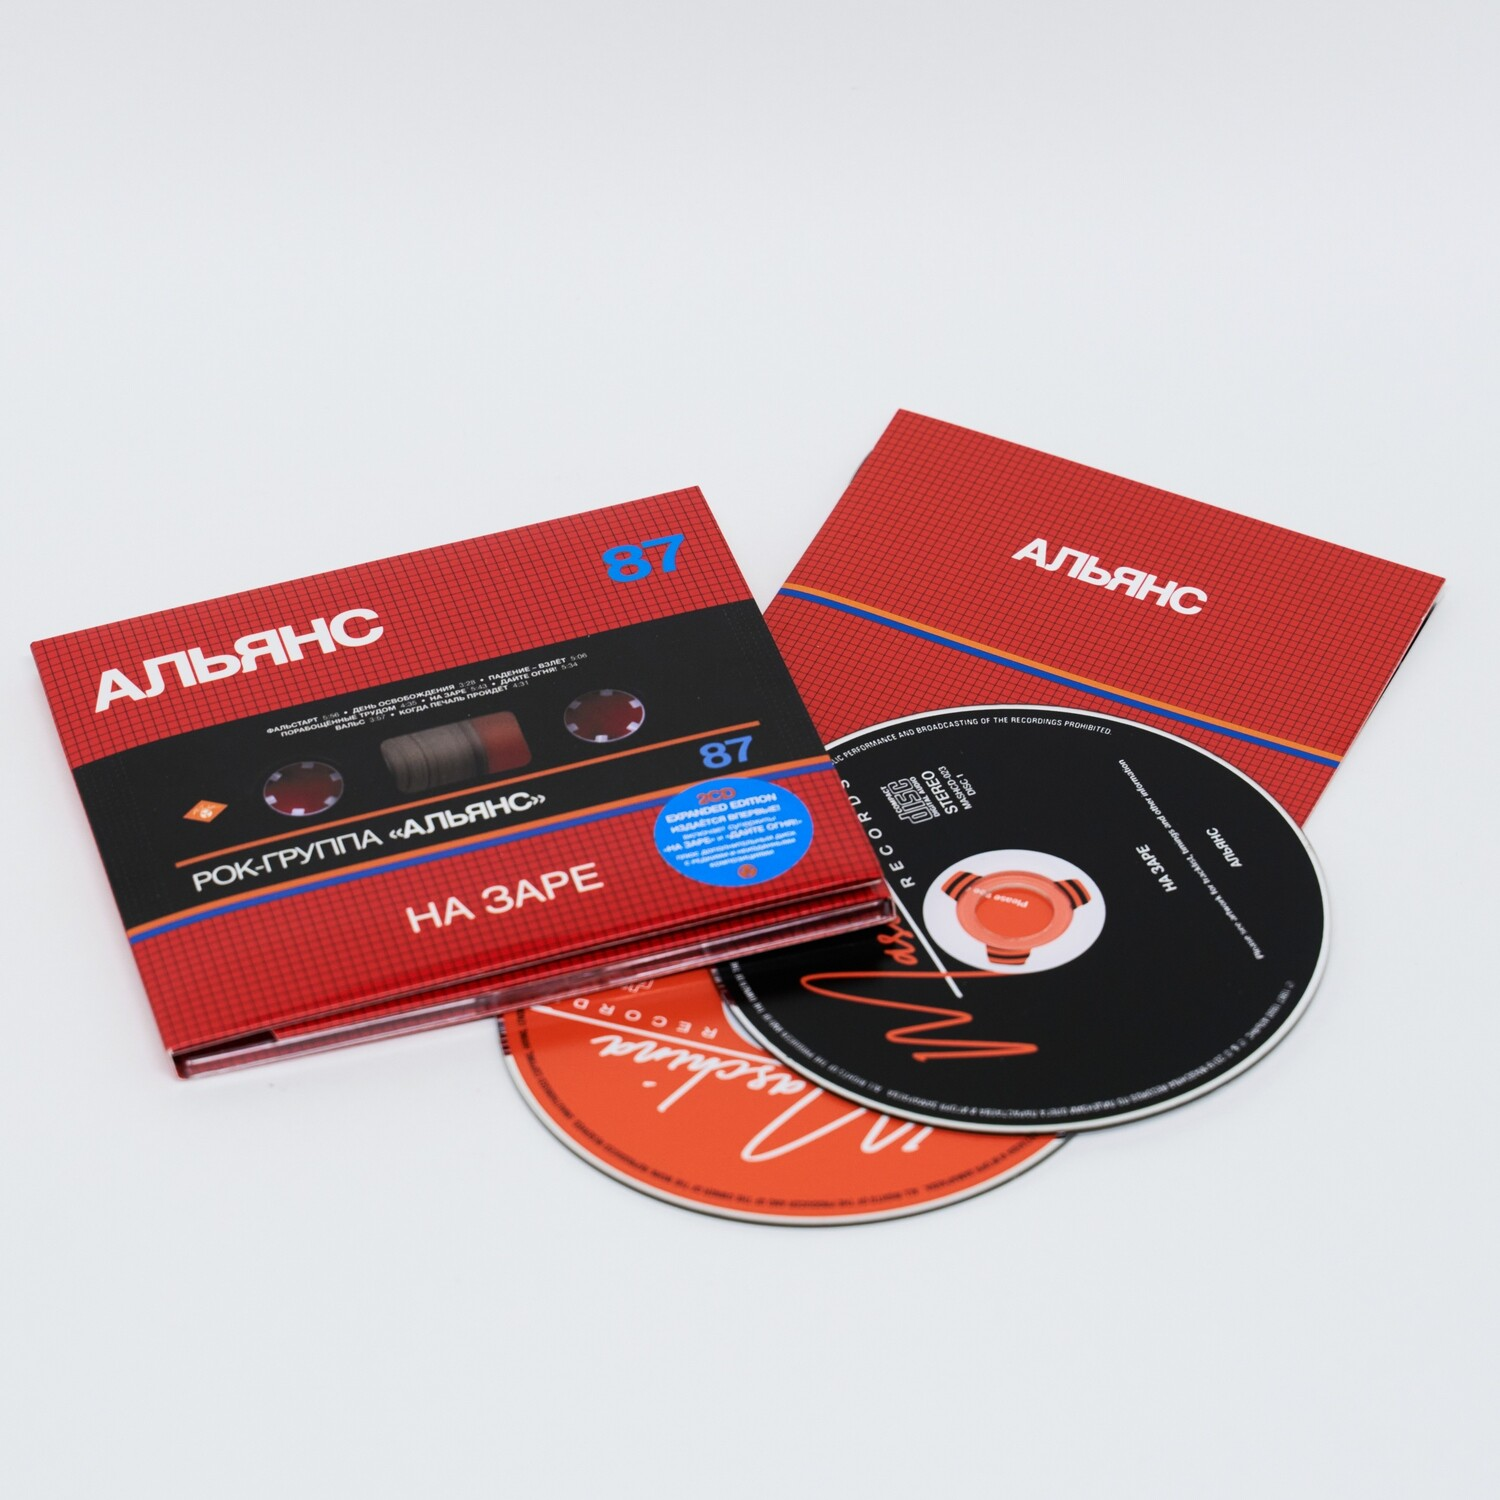 CD: Альянс — «На Заре» (1987/2018) [2CD Expanded Edition]